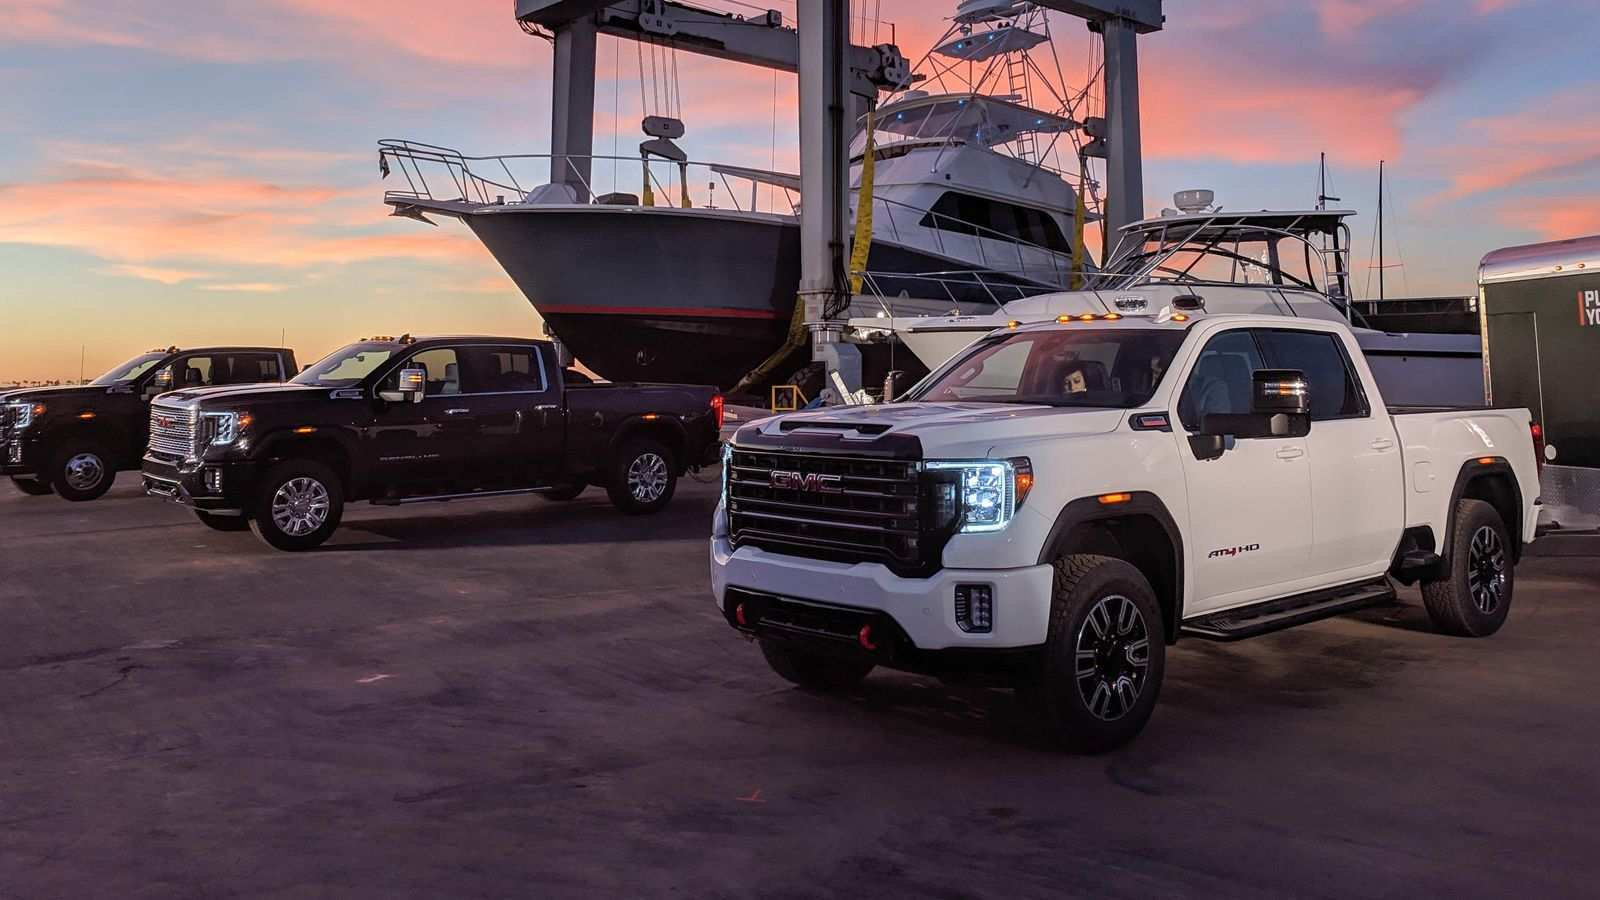 49 All New 2020 Gmc Pickup Research New for 2020 Gmc Pickup